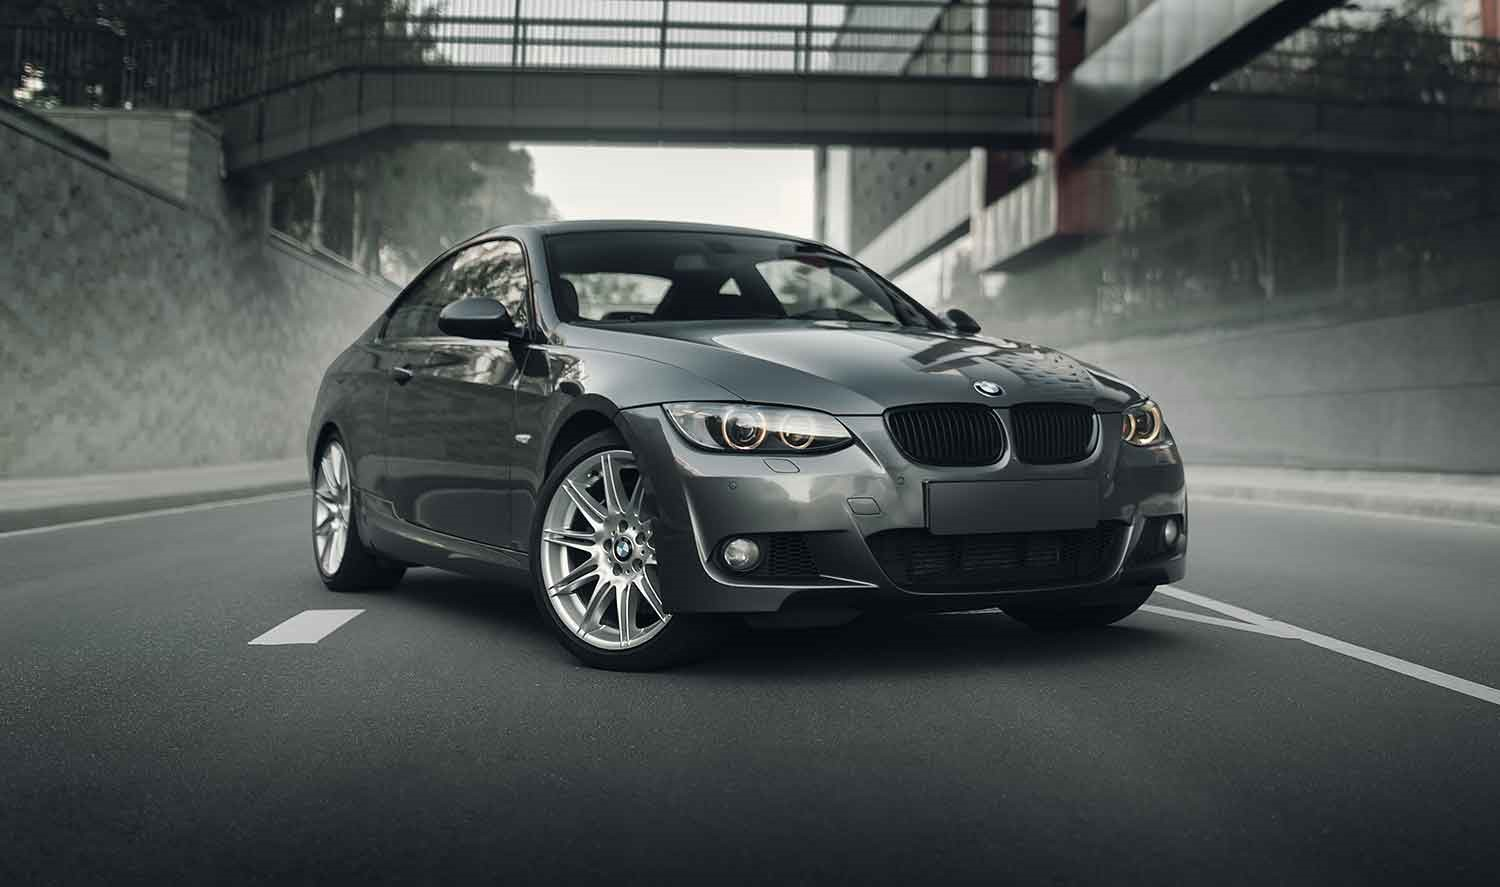 Picture of Black BMW